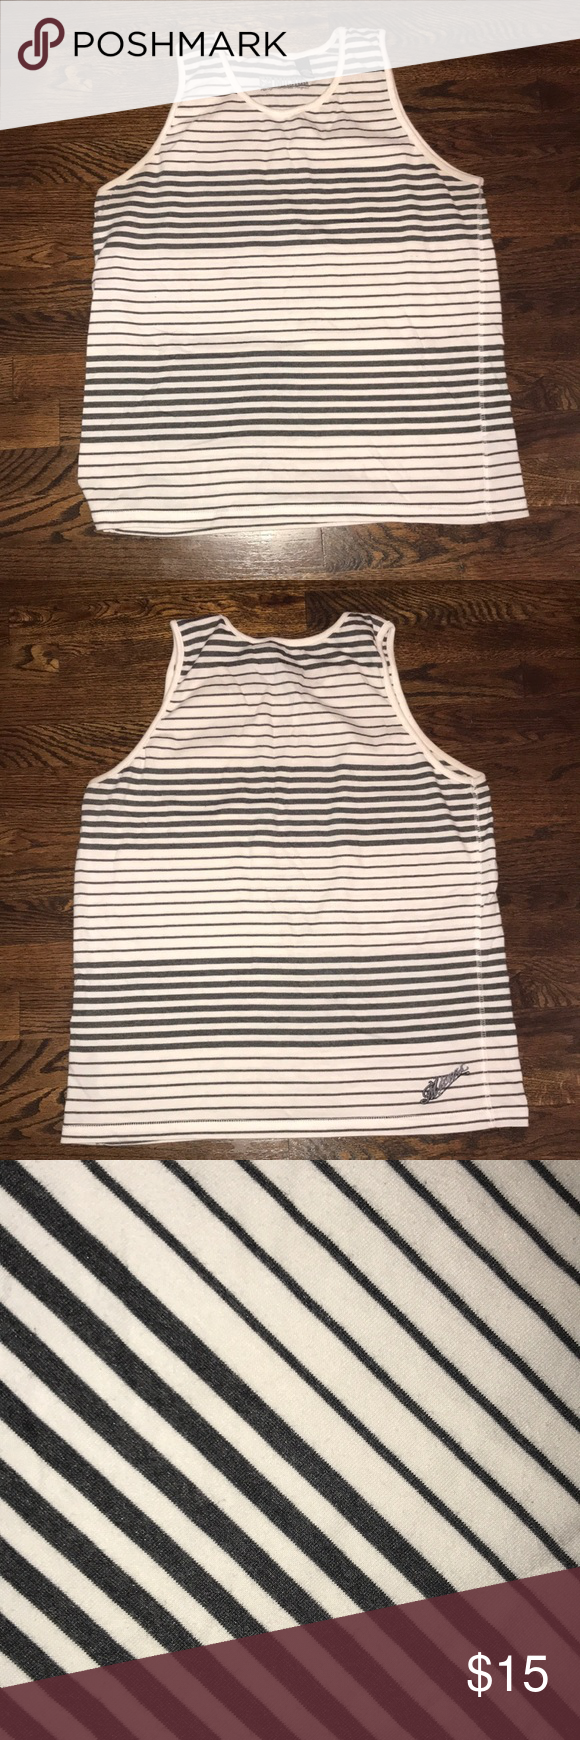 ad2164fcbeea7 Men s tank Men s tank Black and white stripes Micros Shirts Tank Tops